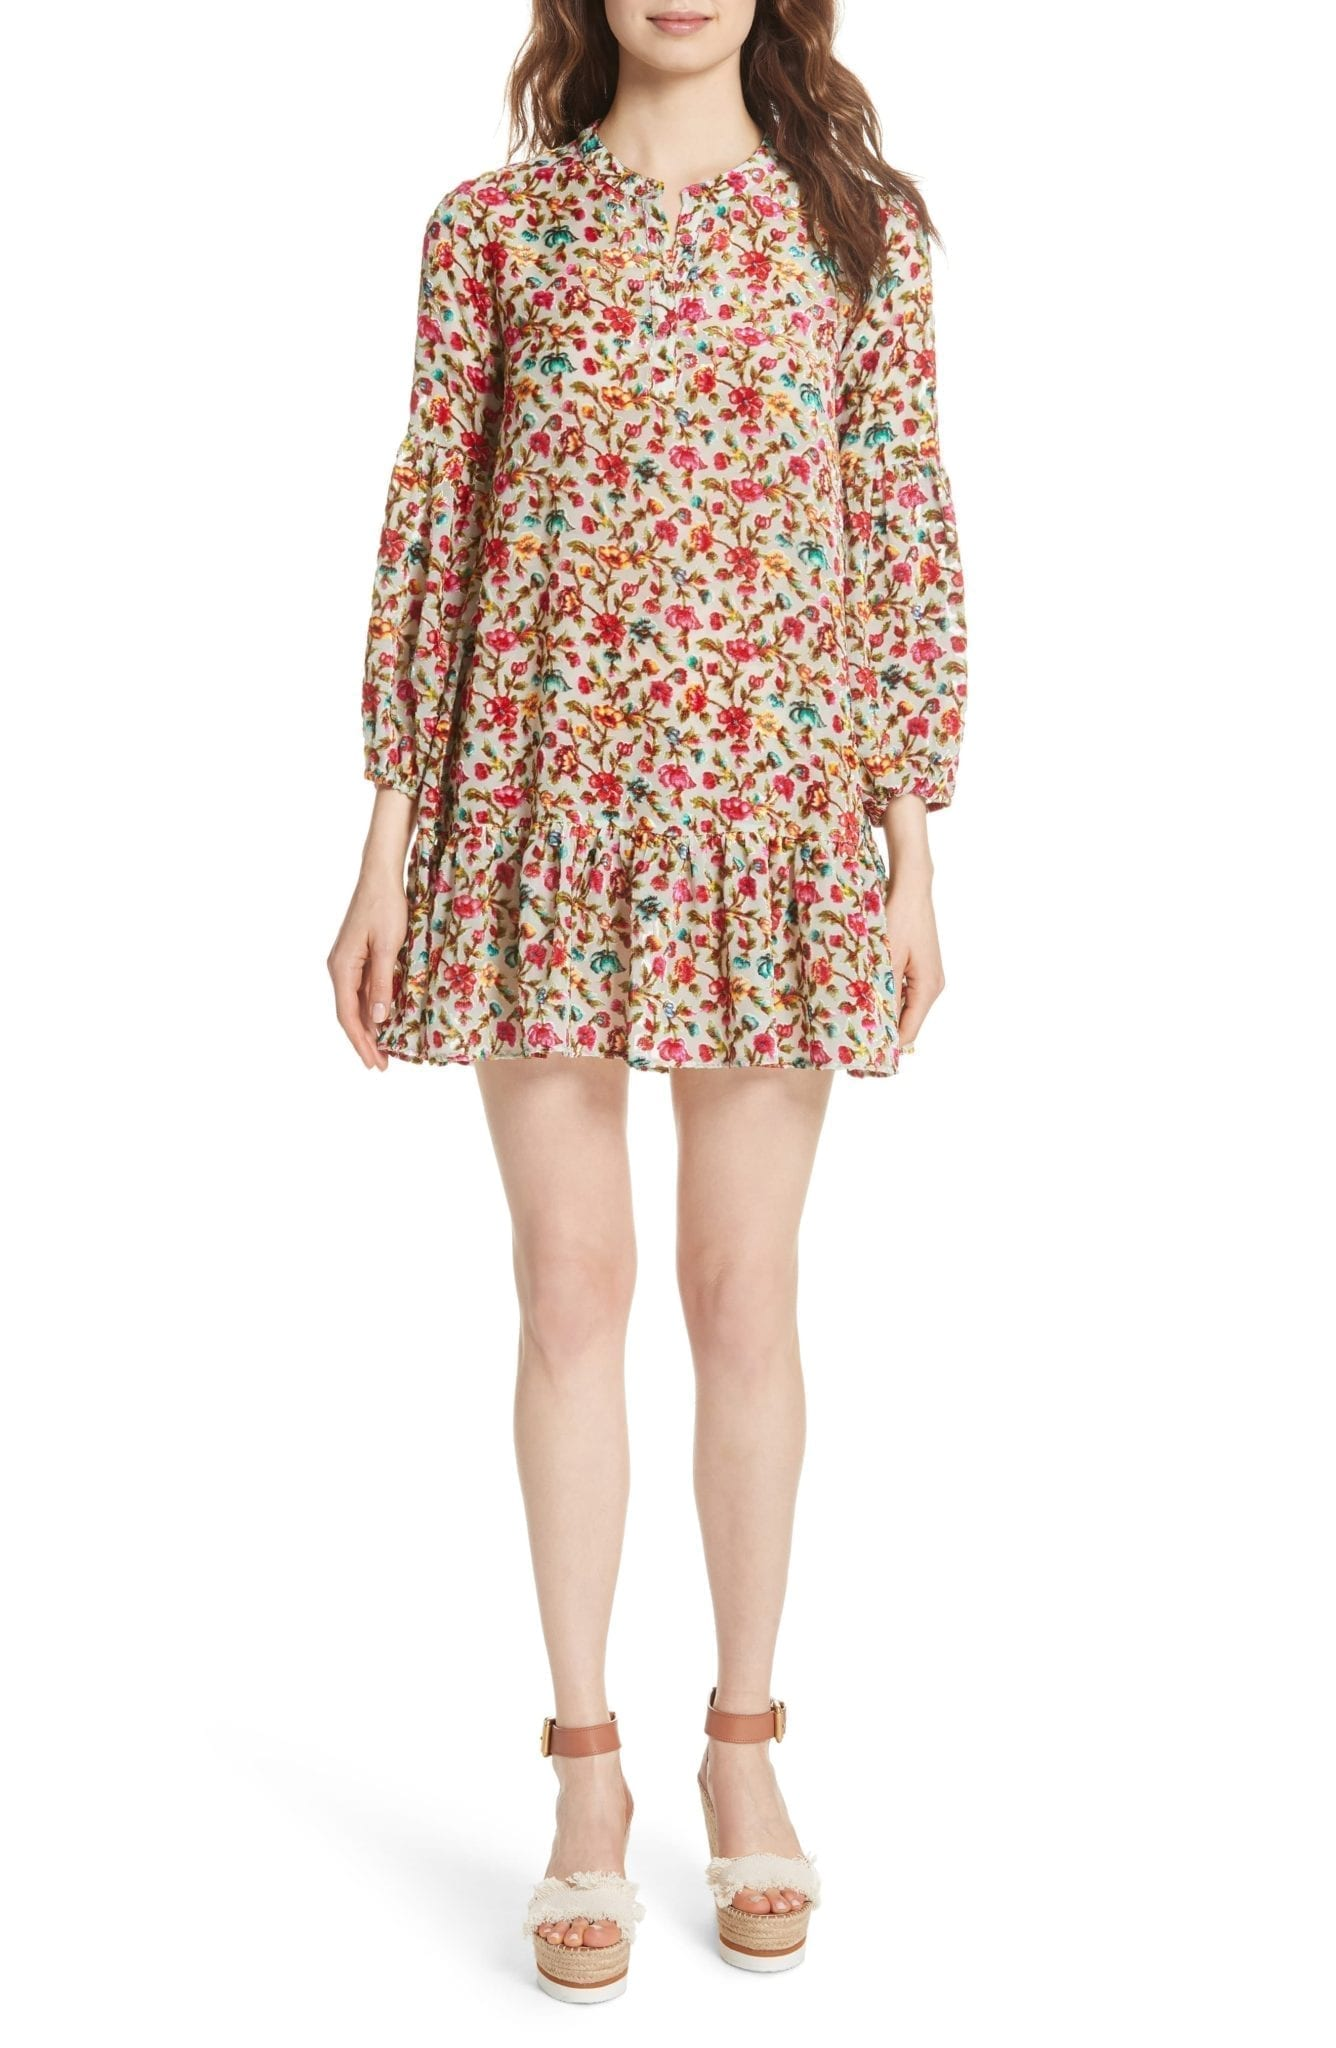 MES DEMOISELLES Simpson Multi / Printed Dress